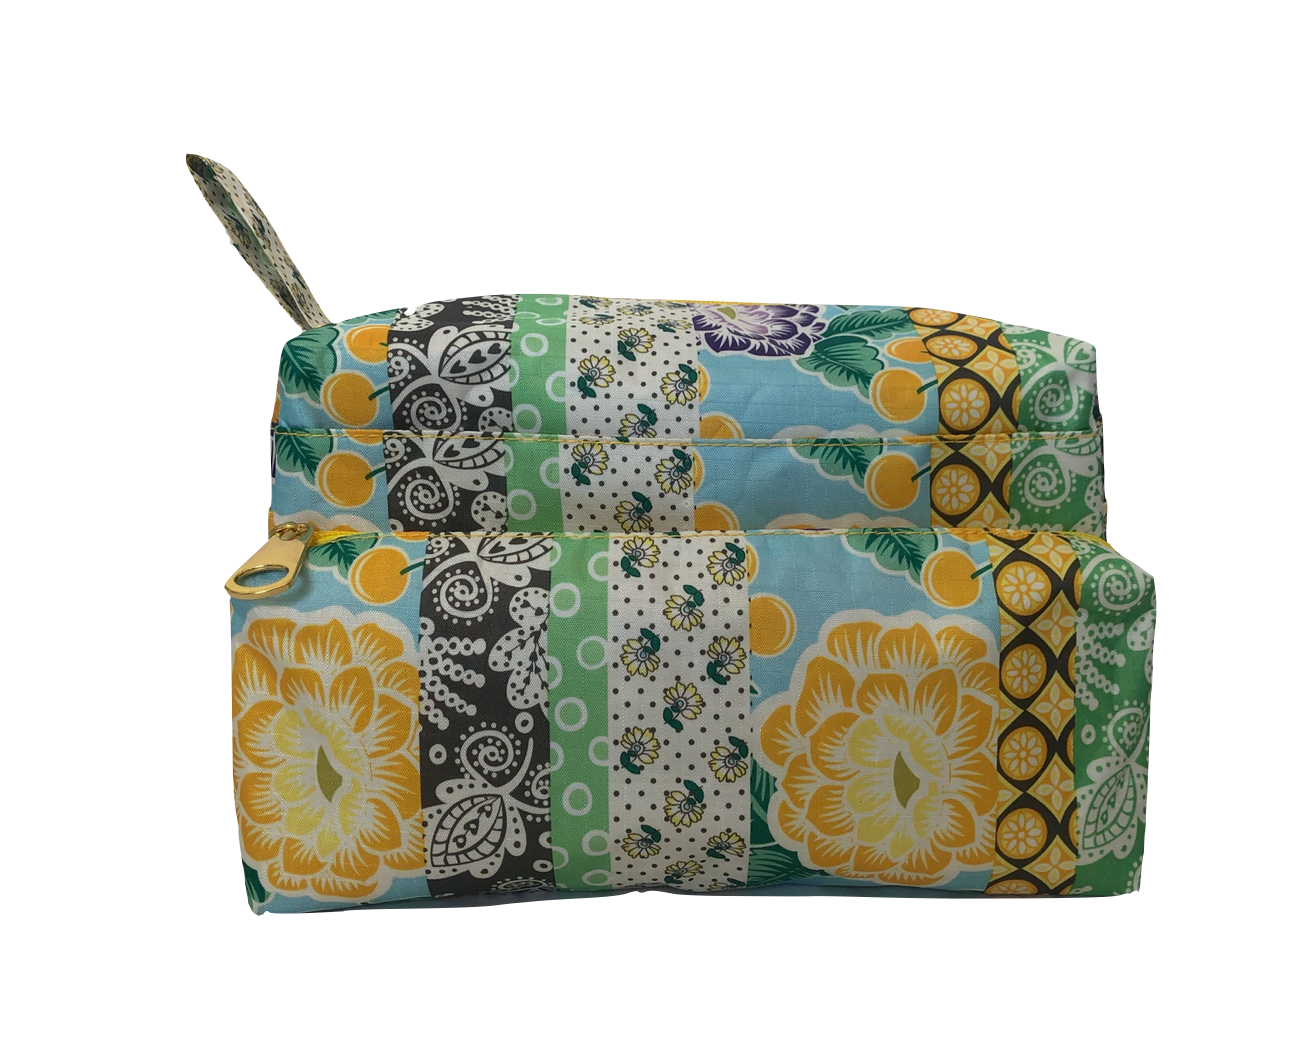 Printed Bag organizer (limited edition)